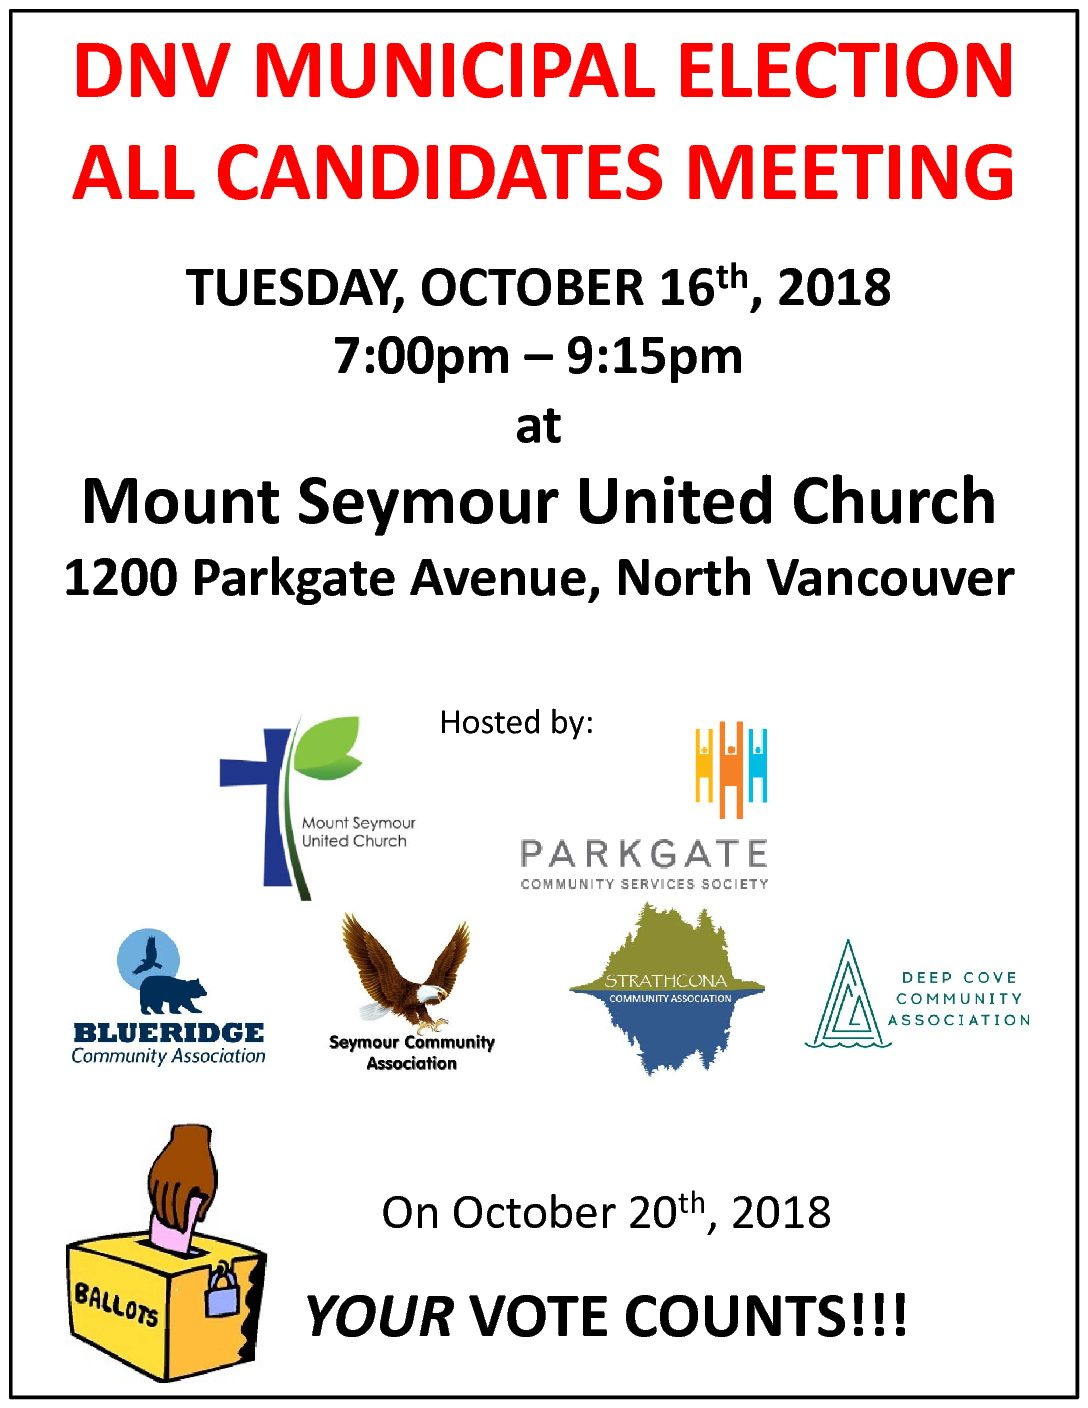 DNV Municipal Election All Candidates Meeting